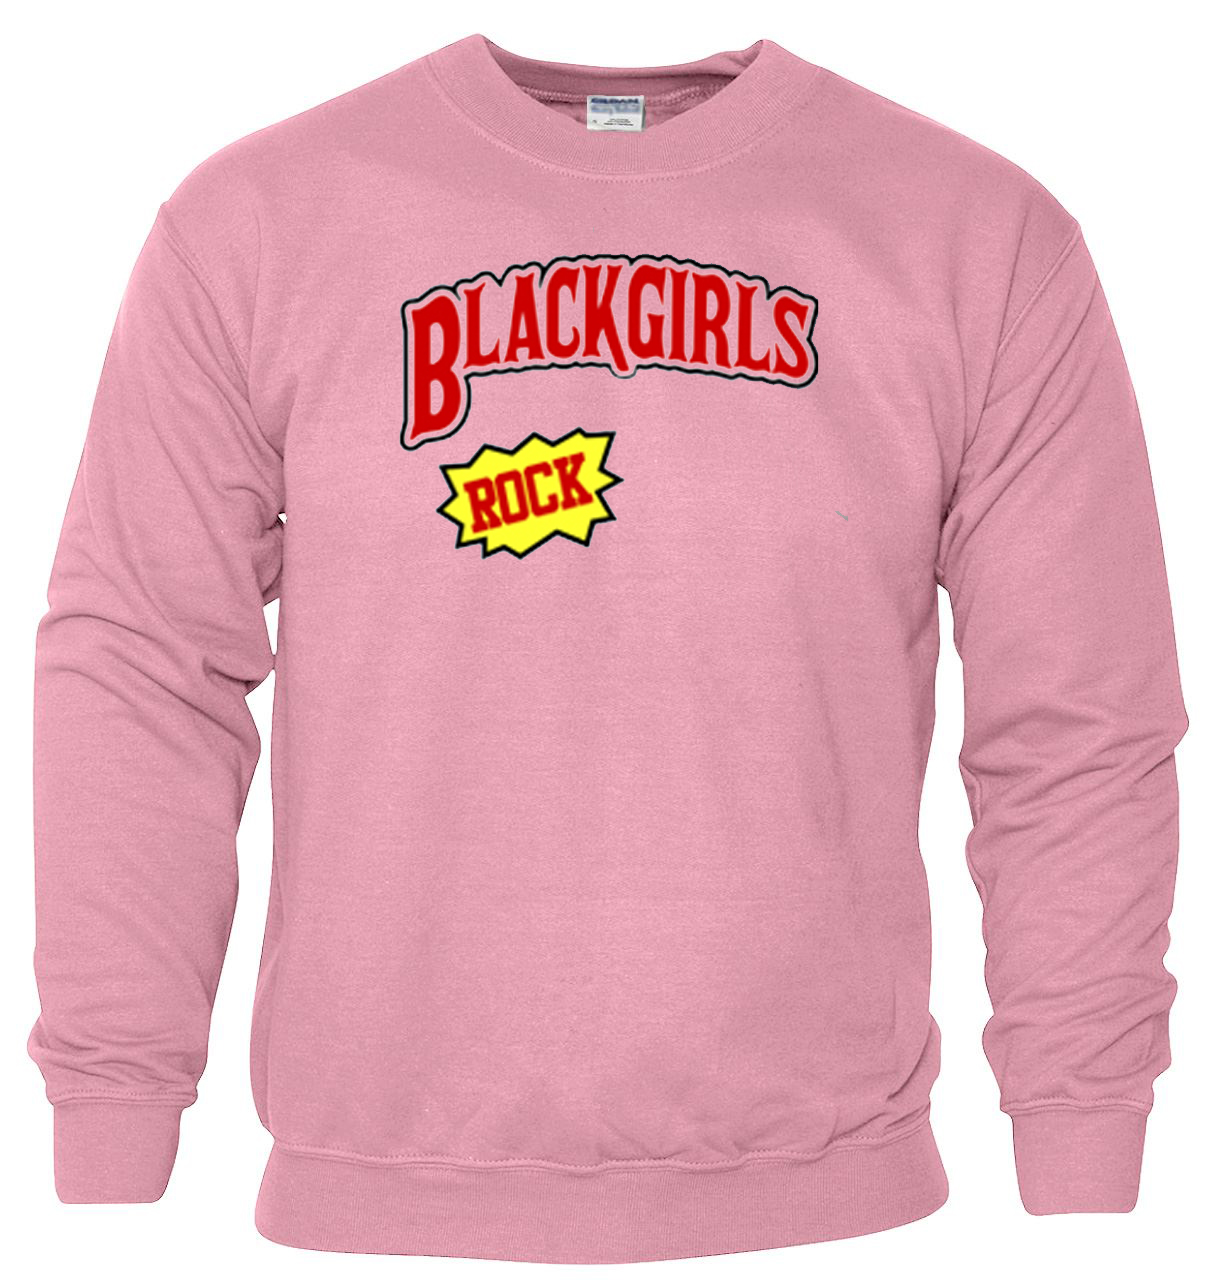 Black Girl Rocks pink Sweatshirt